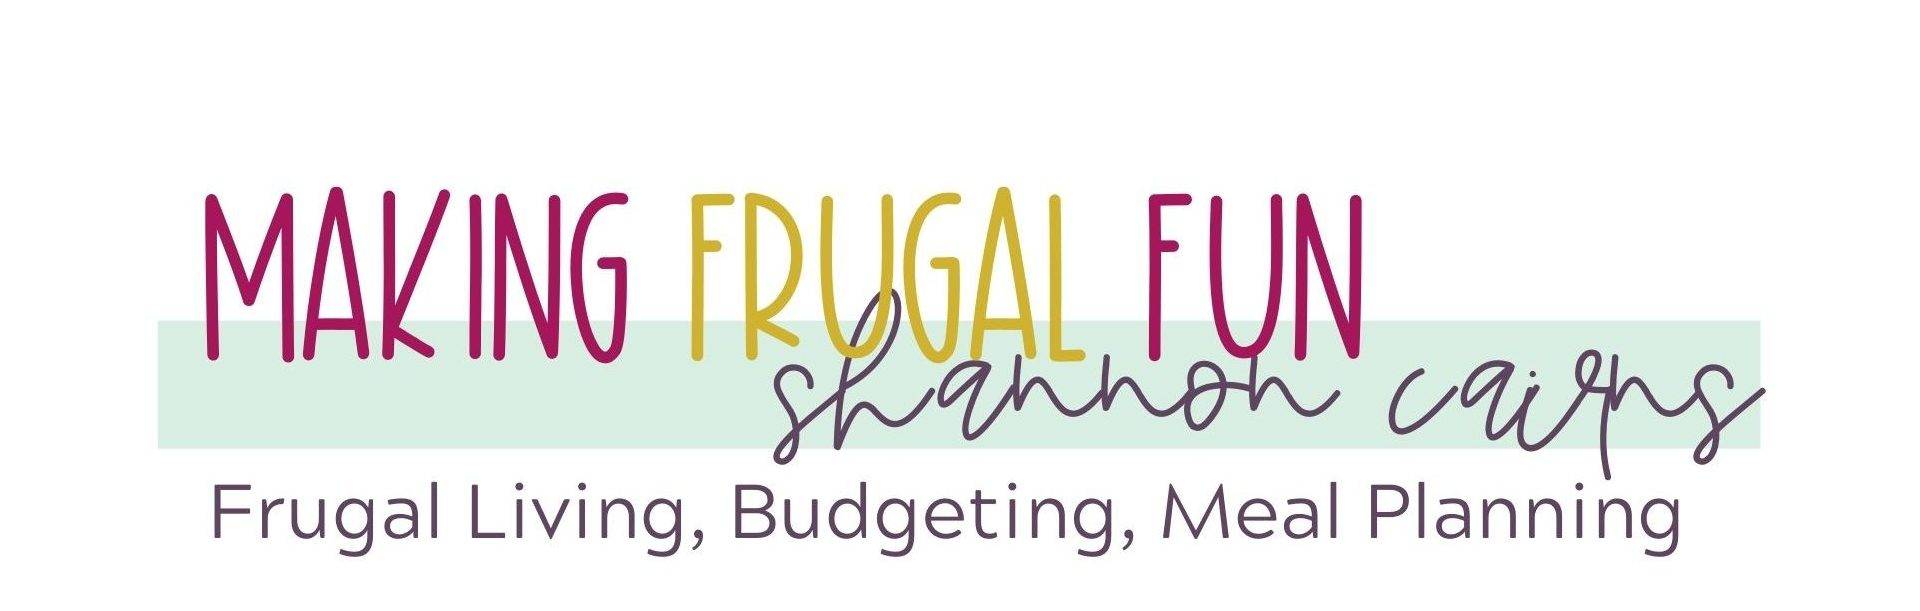 Making Frugal FUN